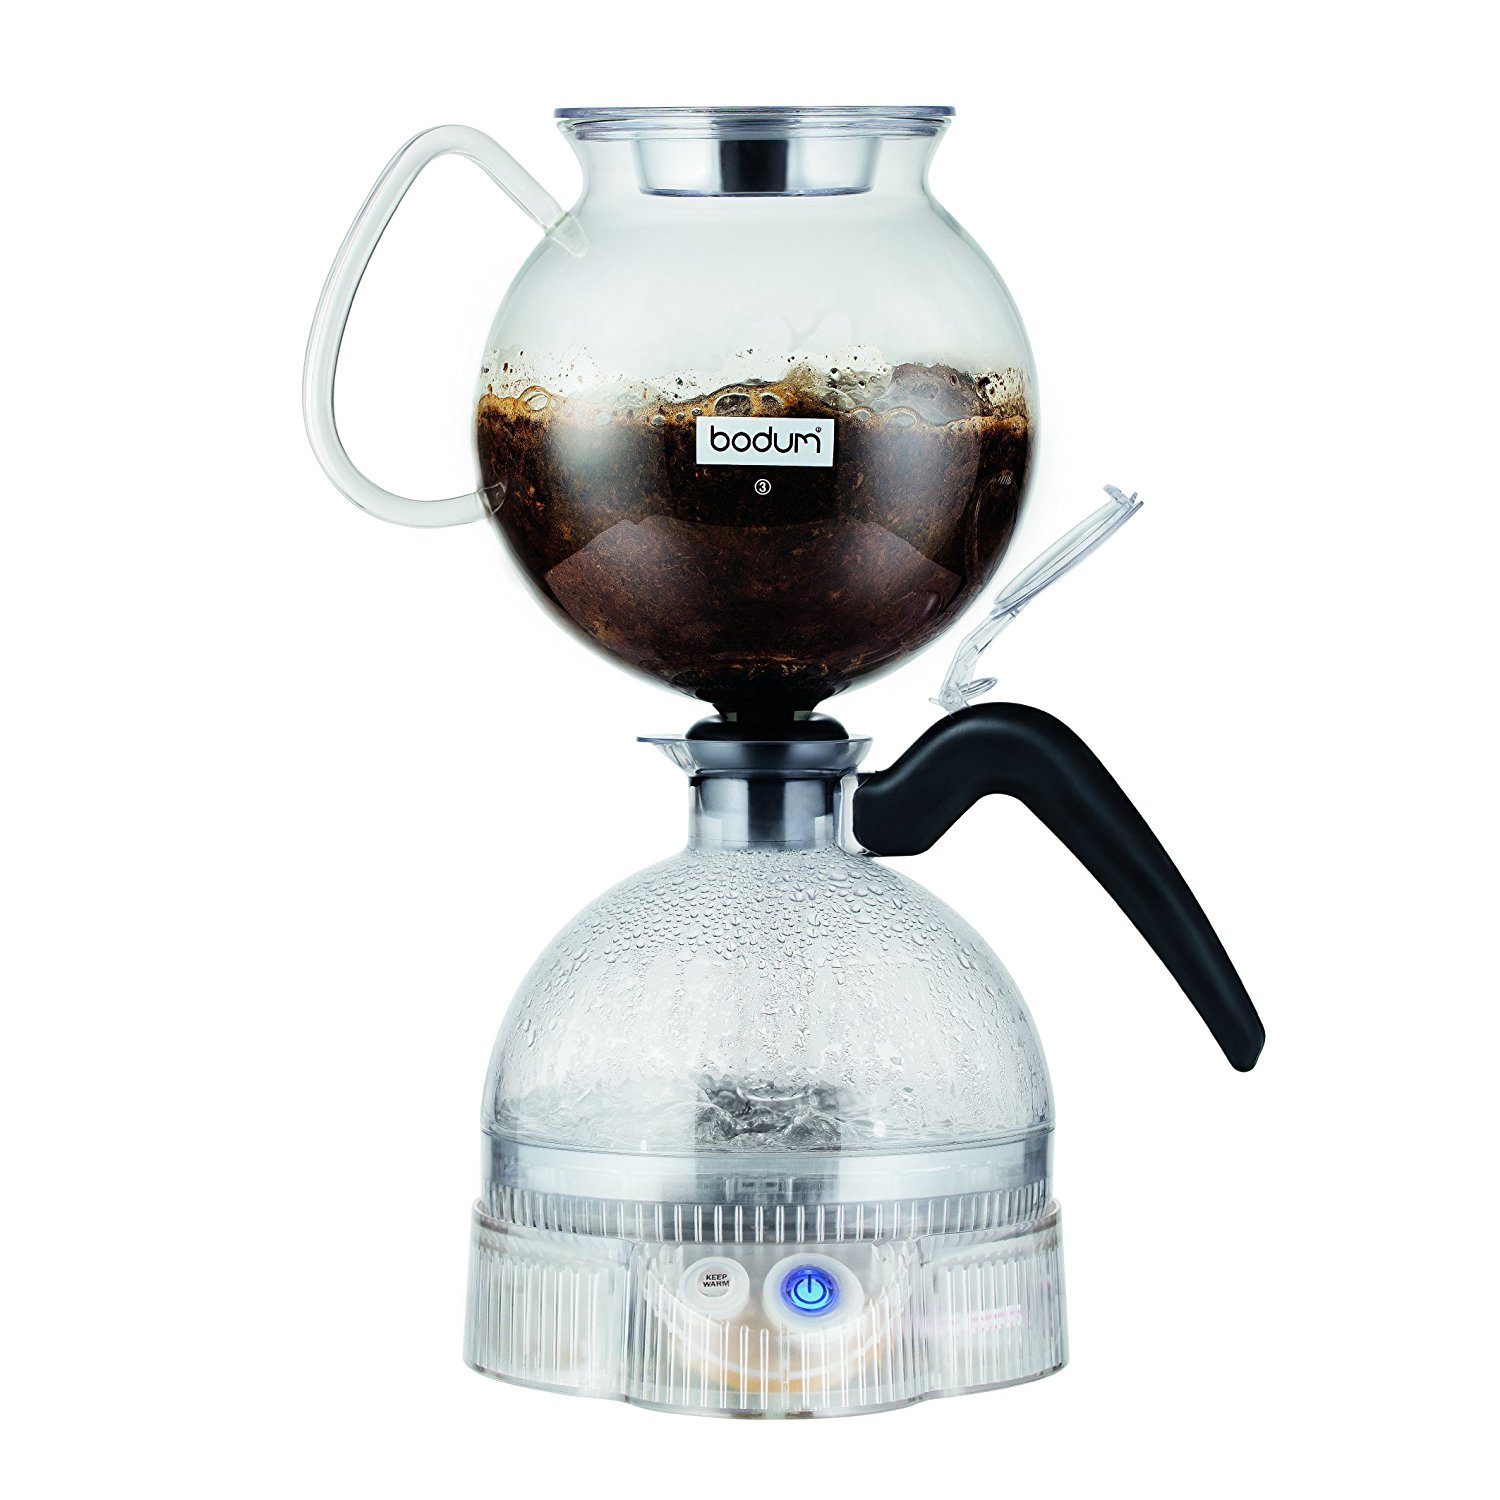 Vacuum Coffee Maker In Spanish : Bodum ePEBO Coffee Maker, Electric Vacuum Coffee Maker Best Price - Bodum ePEBO Coffee Maker ...